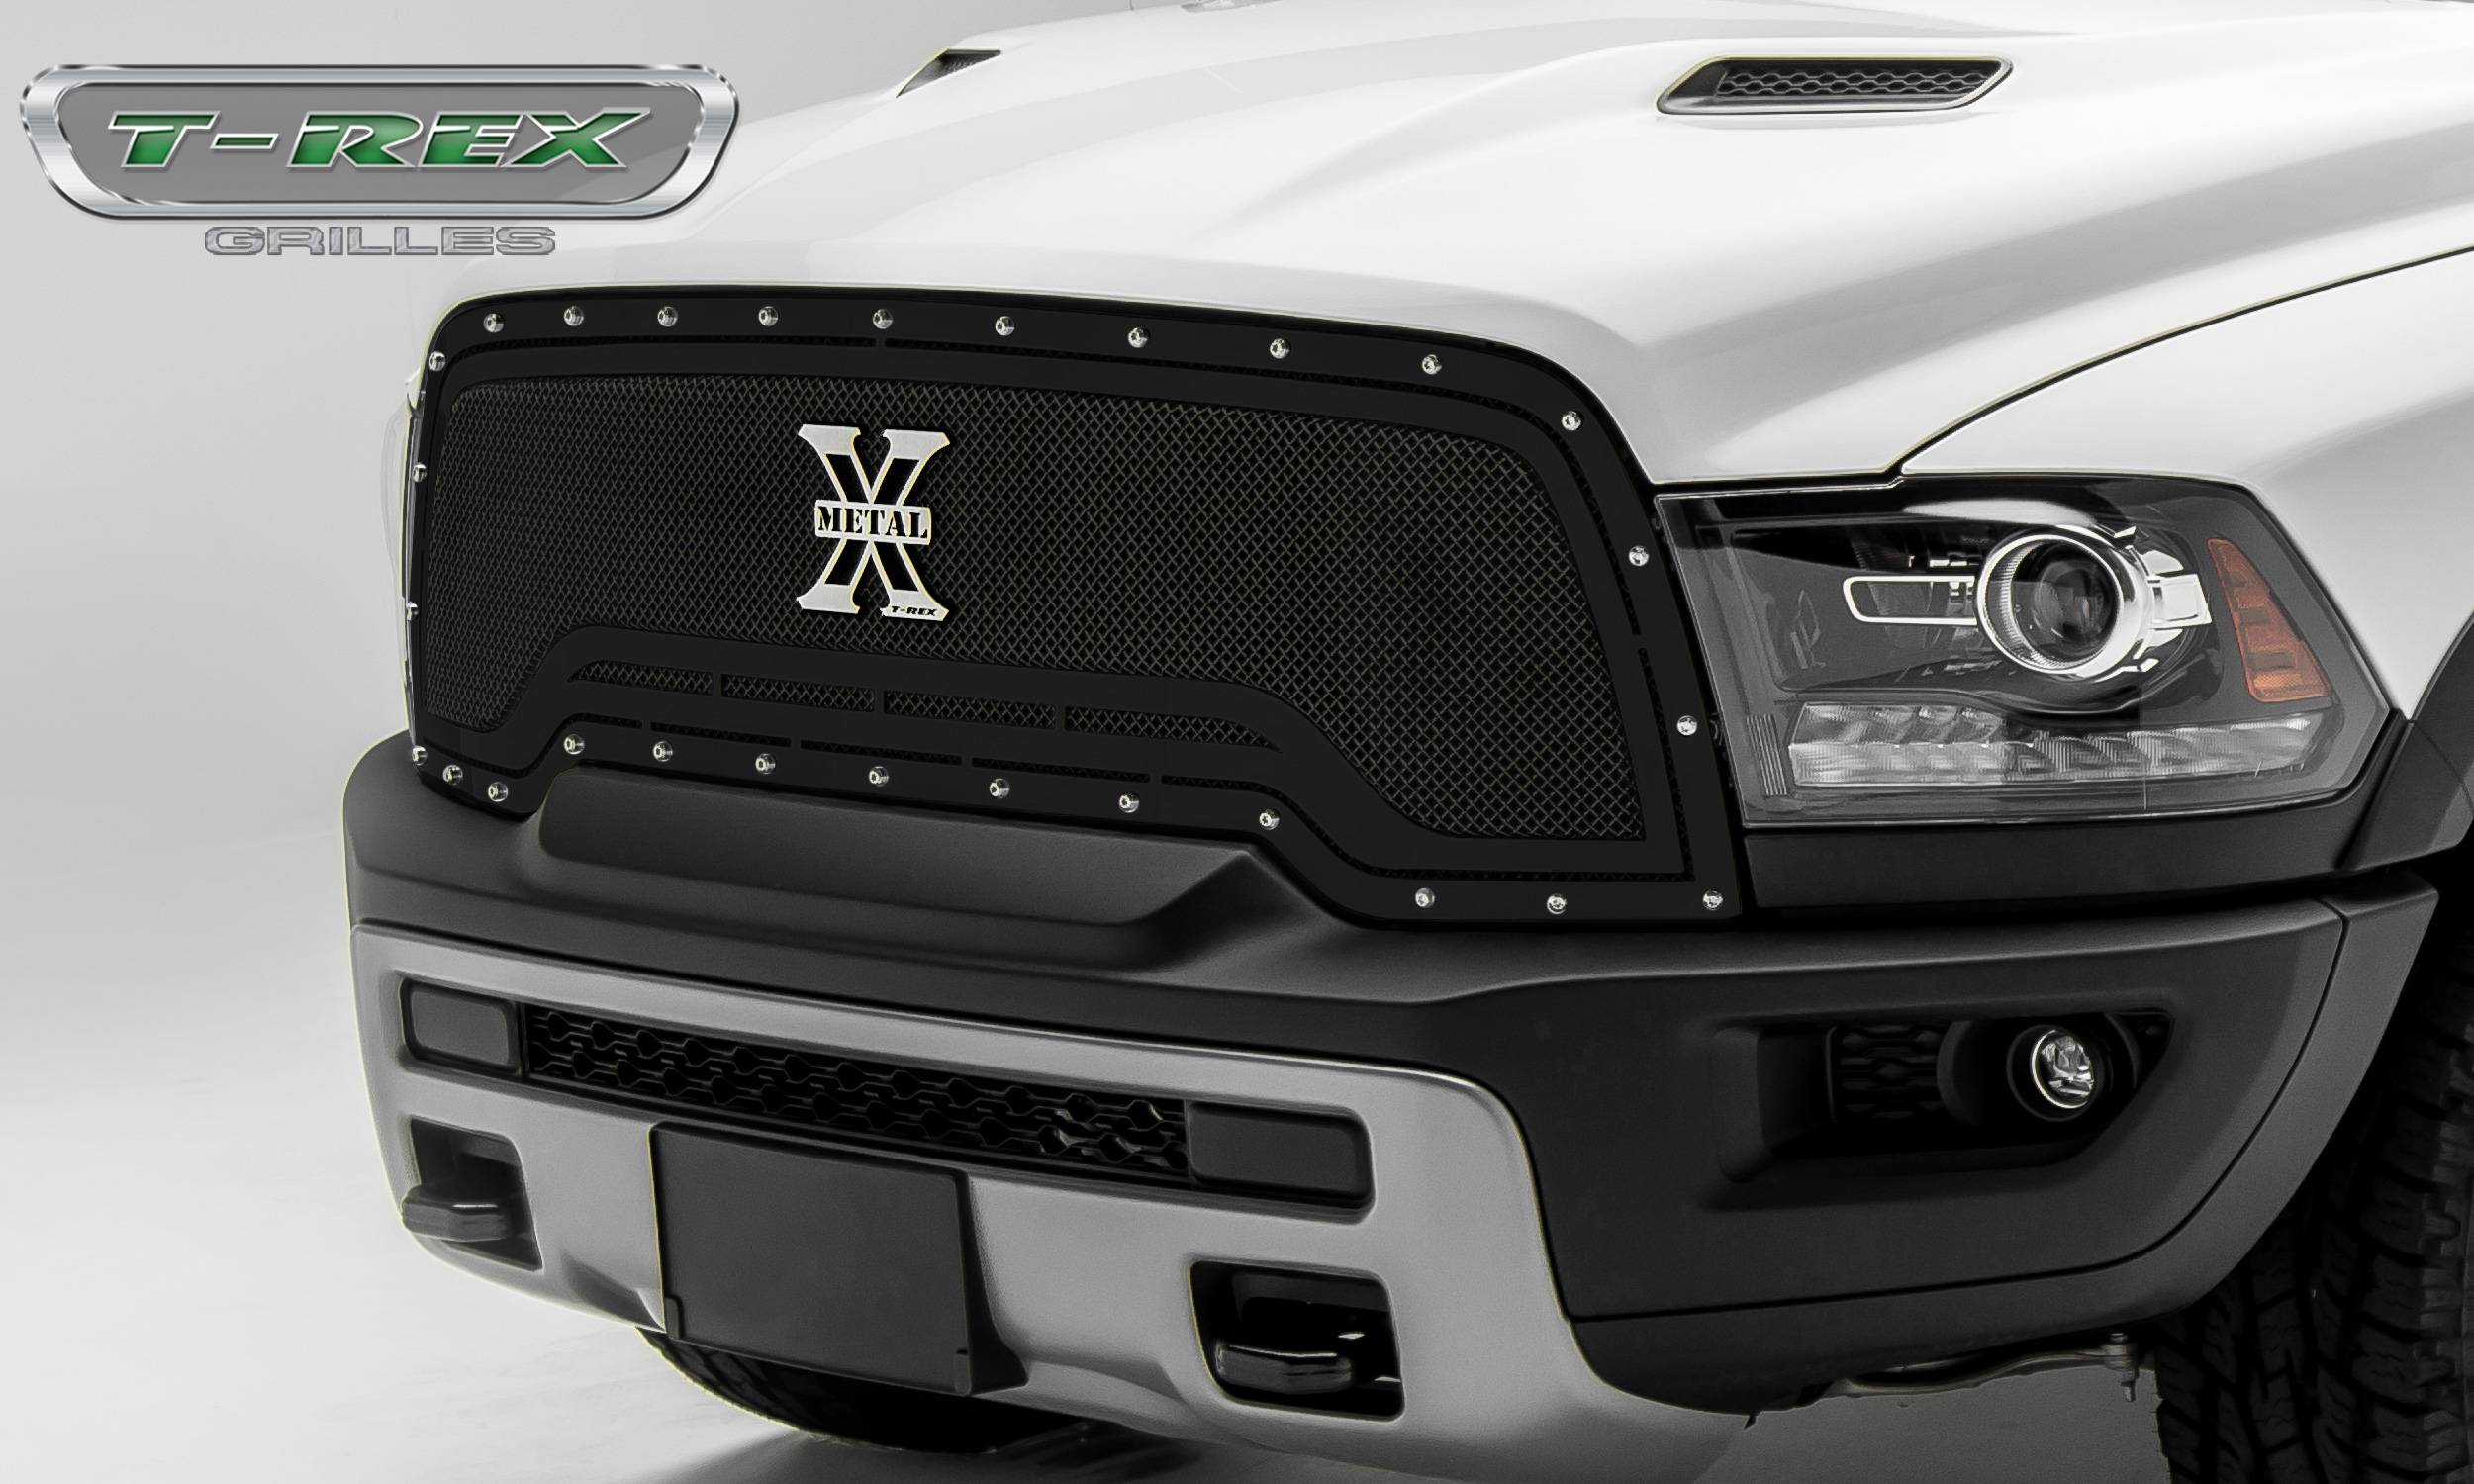 T-REX Ram Rebel - X-METAL Series - Main Grille Replacement - Steel Frame w/ Wire Mesh - Studded with Black Powdercoat Finish - Part #6714641